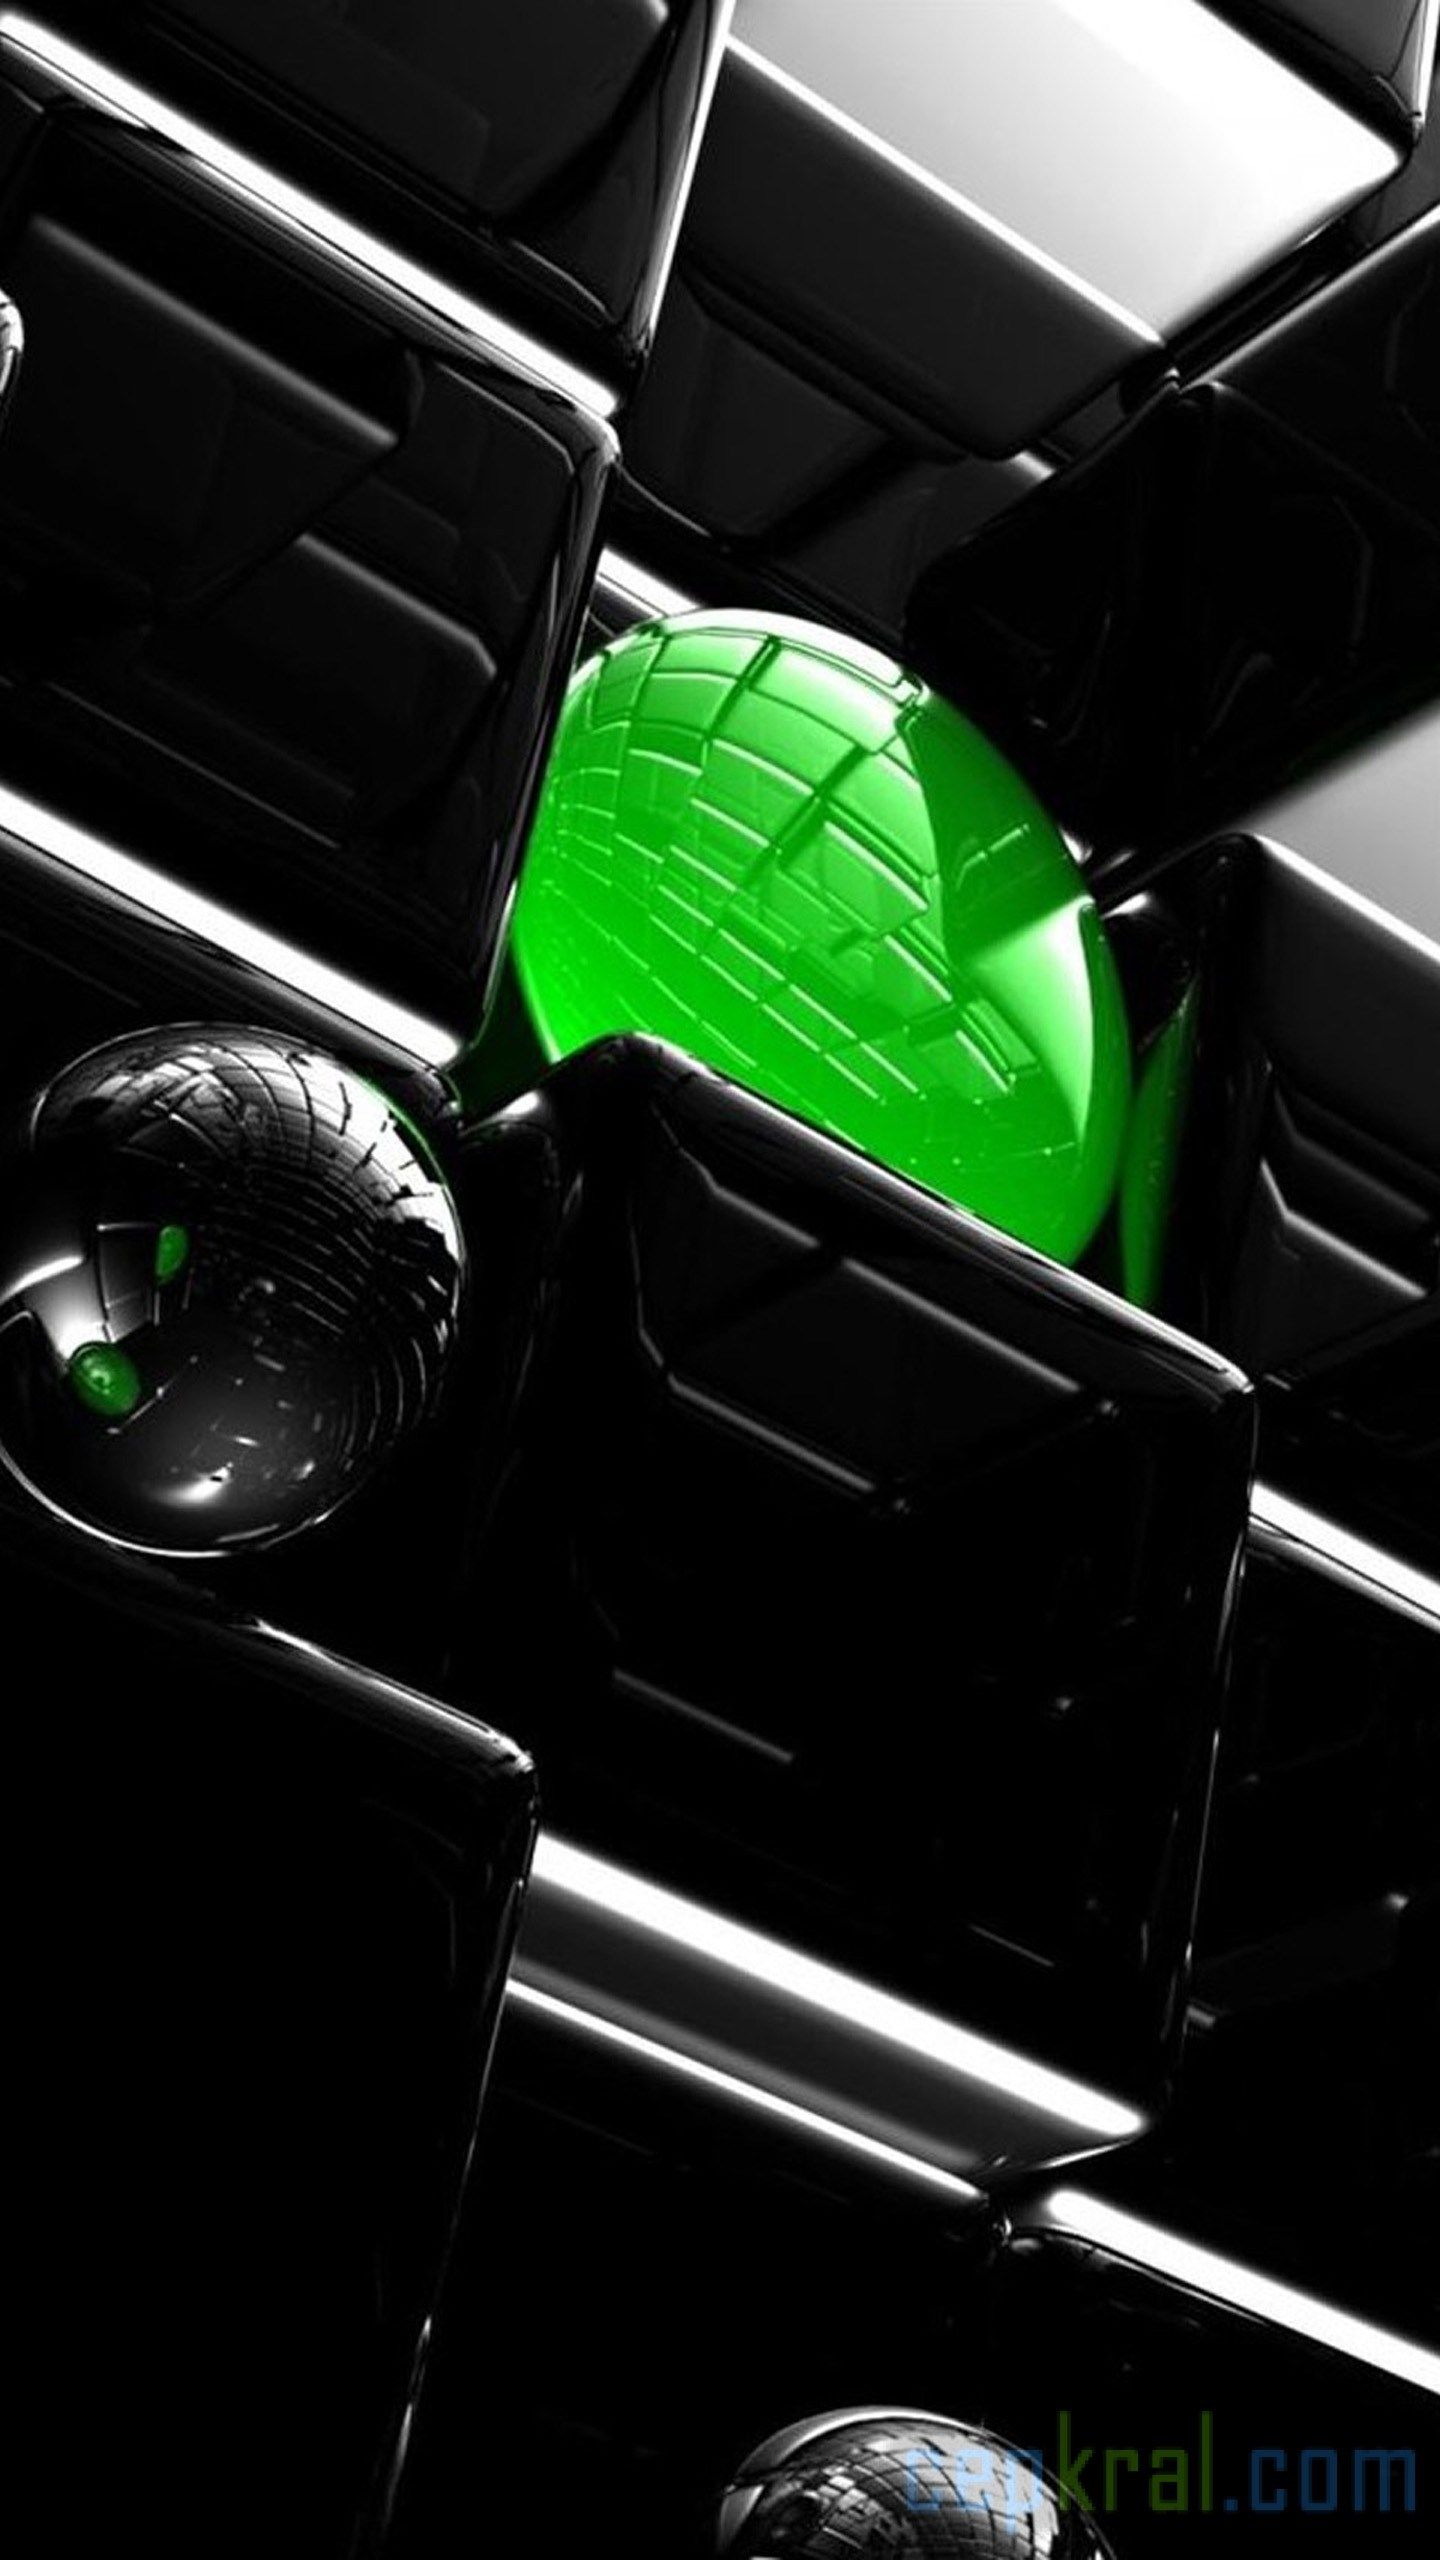 3d wallpapers for samsung s5620 » wallppapers gallery | epic car